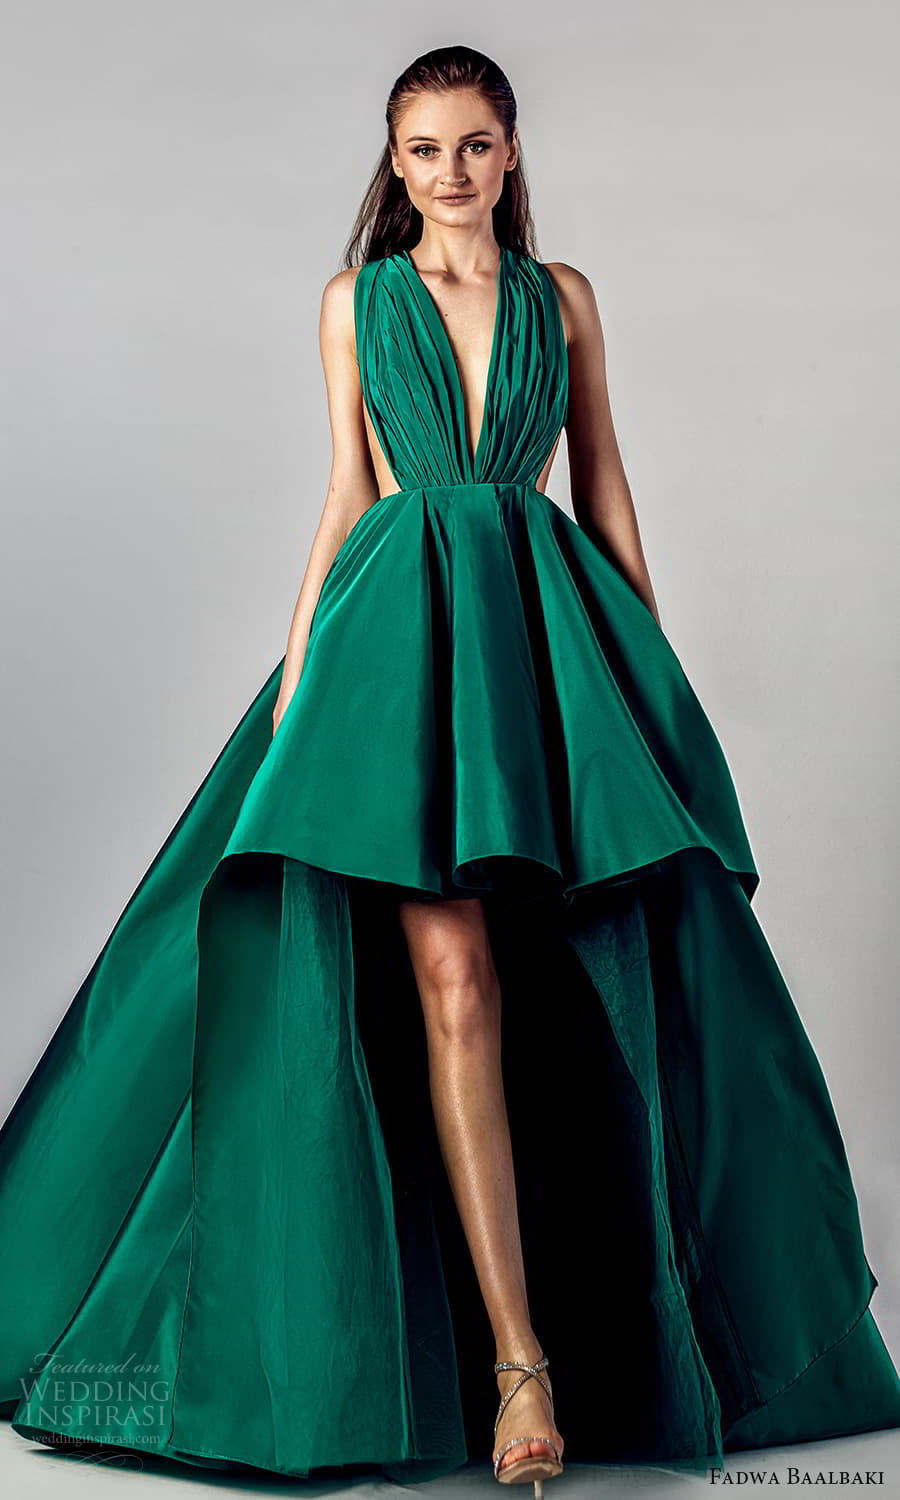 fadwa baalbaki spring 2021 bridal sleeveless thick halter straps plunging v neckline ruched bodice a line ball gown high low wedding dress chapel train green color (7) mv